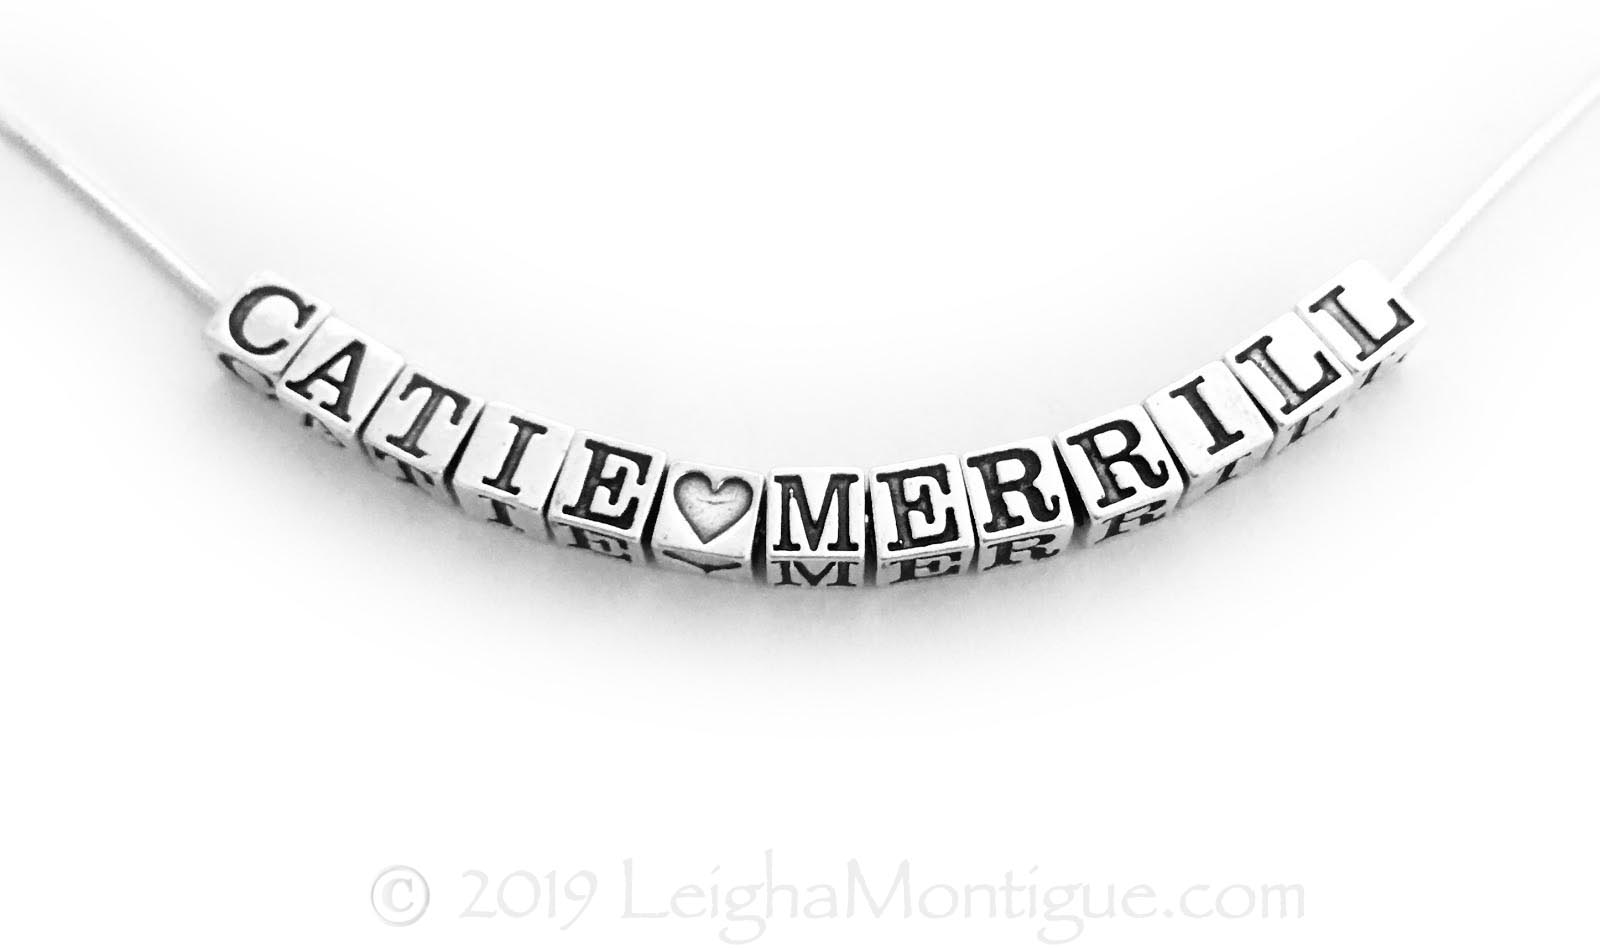 Catie and Merrill Sterling Silver Snake Chain Name Necklace - JBL-N- Snake - 4.5mm block letters